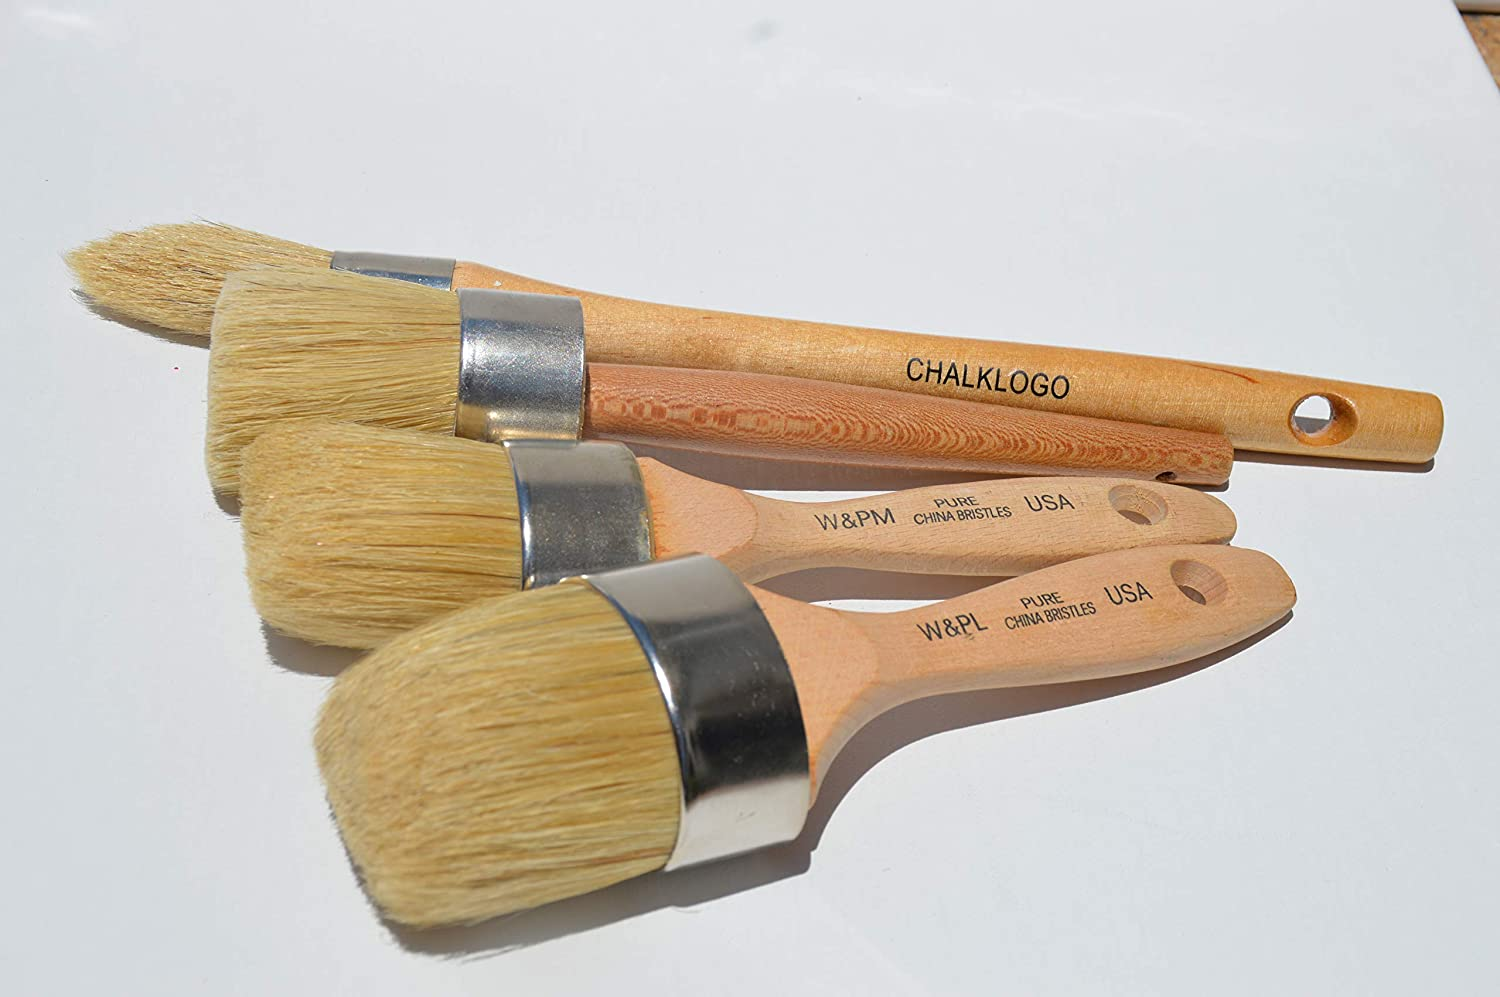 Chalkology Chalk wax and paint Bundle Chalk Master Set!!!! Large DIY Painting and Waxing Tool | Smooth, Natural Bristles | Folk Art, Home Décor, Wood Projects, Furniture, Stencils | Reusable